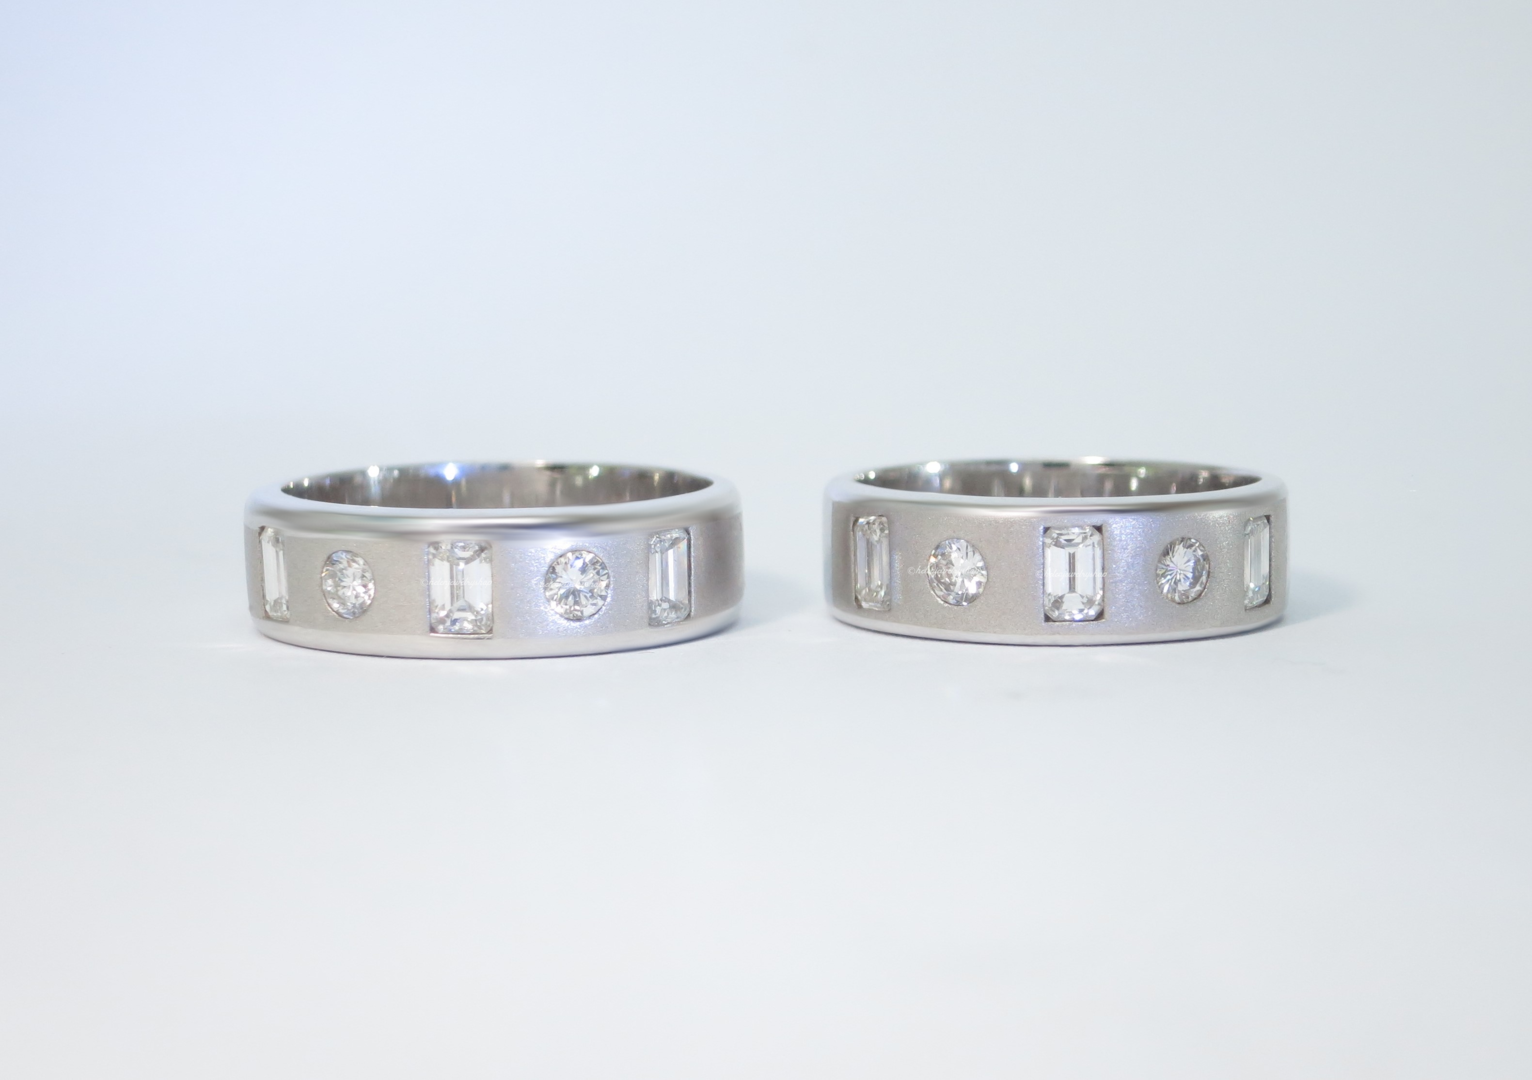 helen jewelry shop is a trusted jewelry store in ongpin we specialize in wedding rings - Wedding Ring Stores